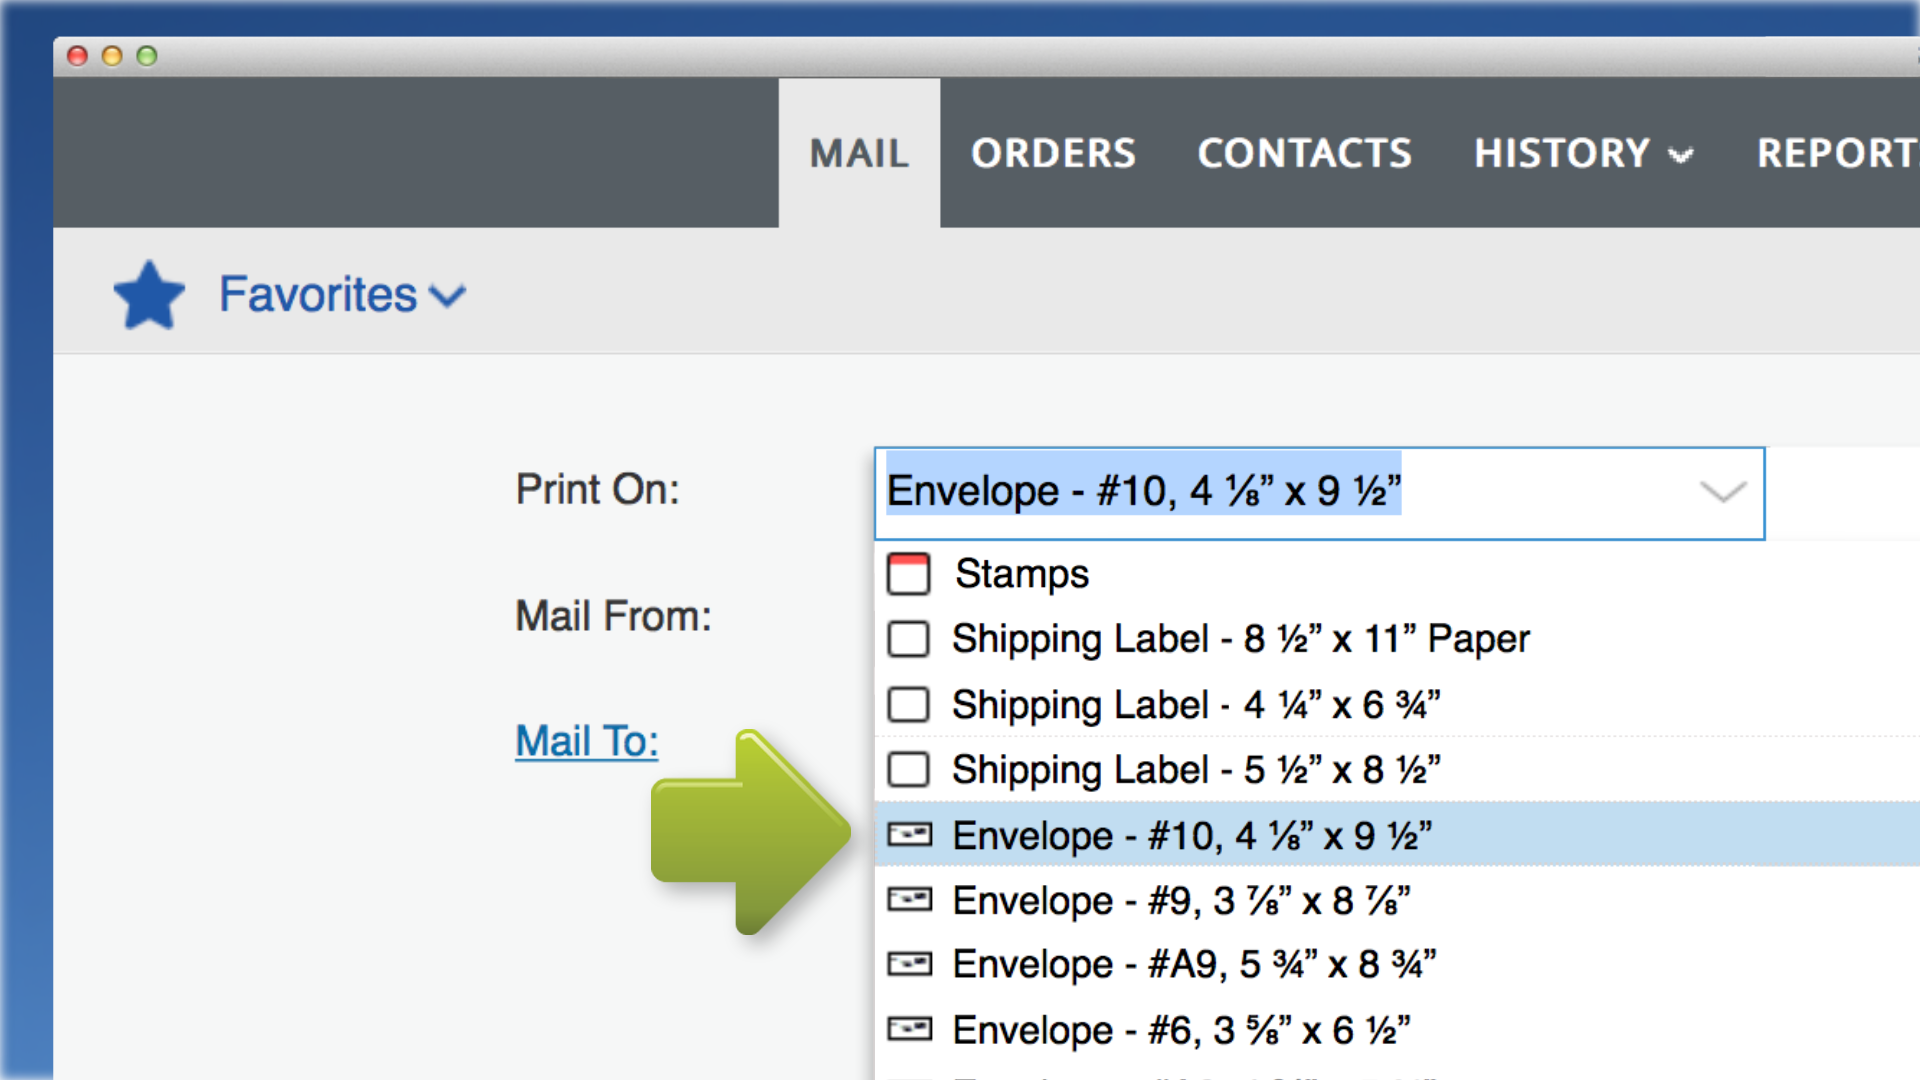 enter a mail to address either manually or from your contacts list